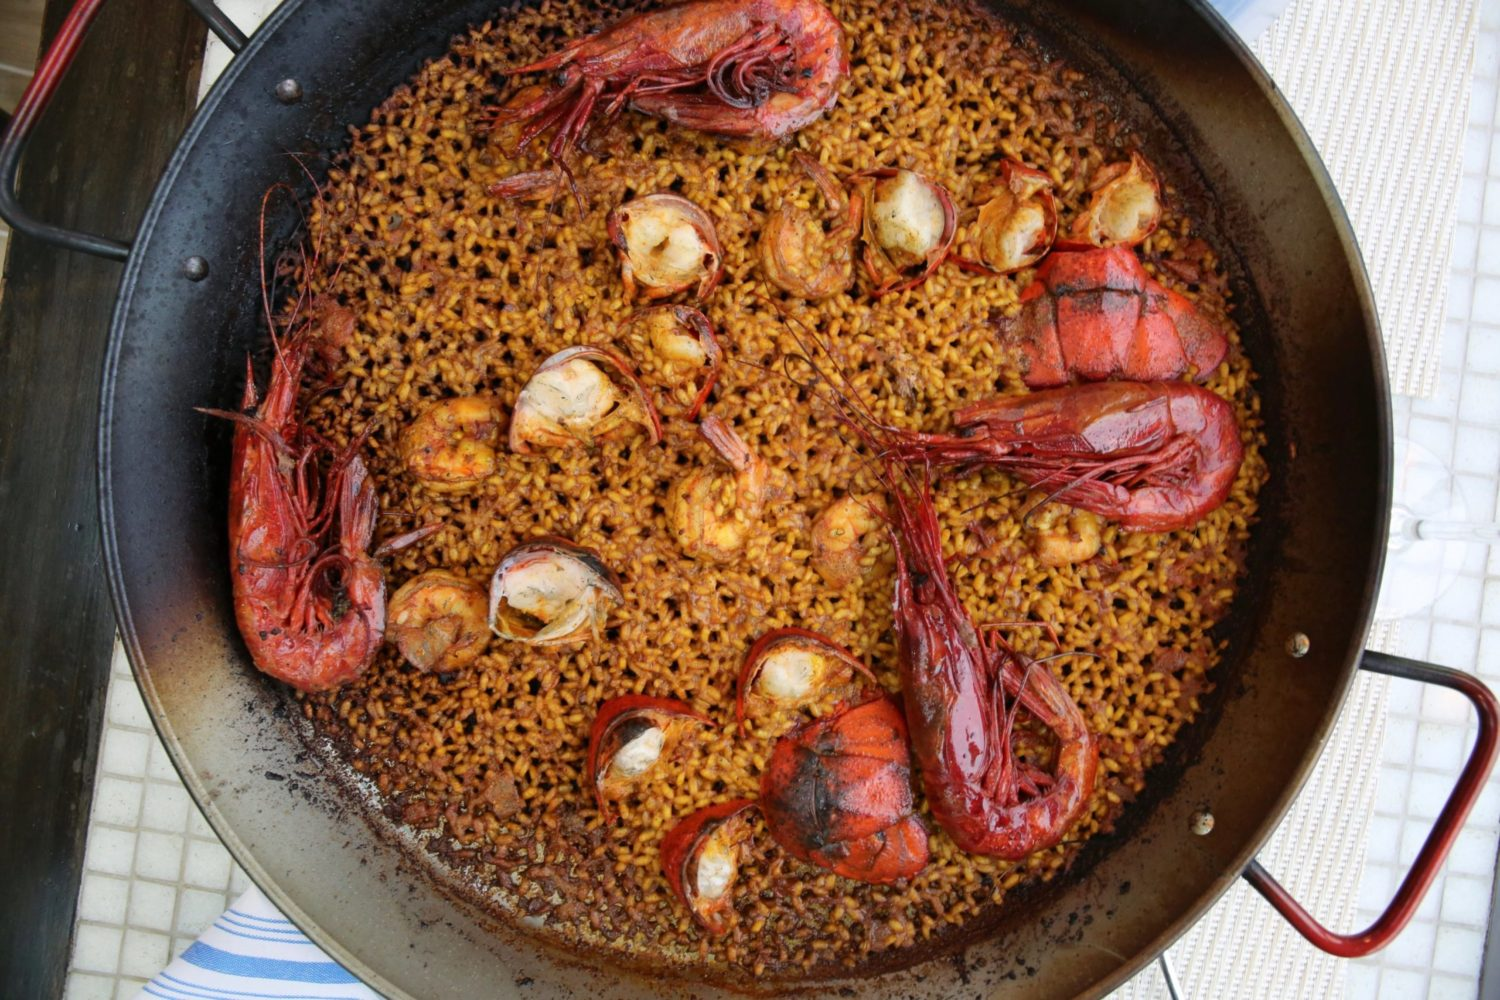 The Dénia-style paella with lobster and red prawn. Photo by Evy Mages.